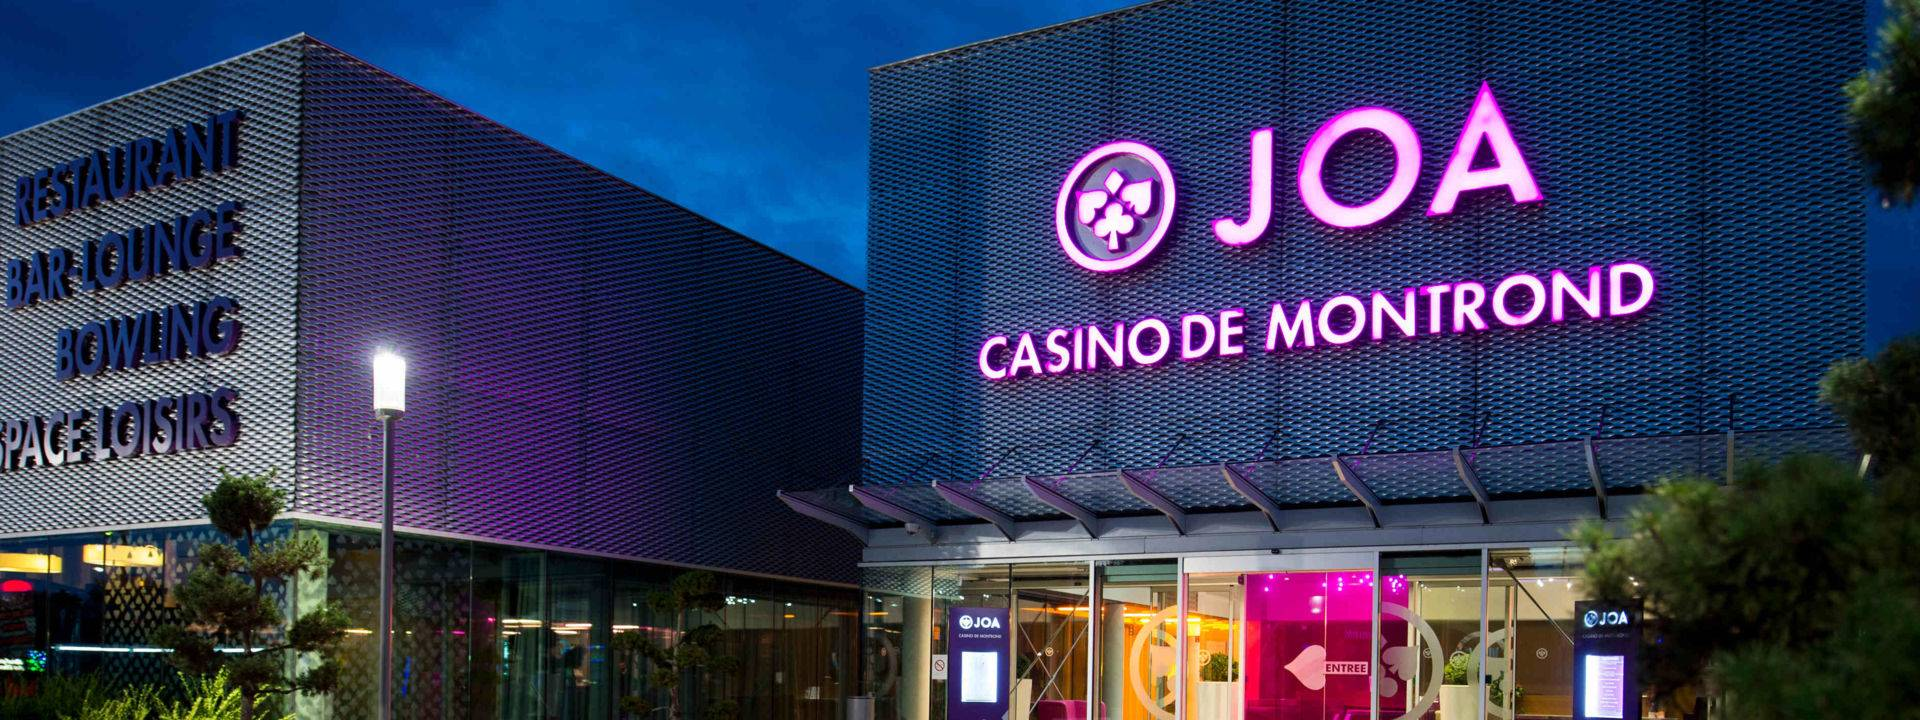 Casino de montrond les bains recrutement wooden folding poker tables